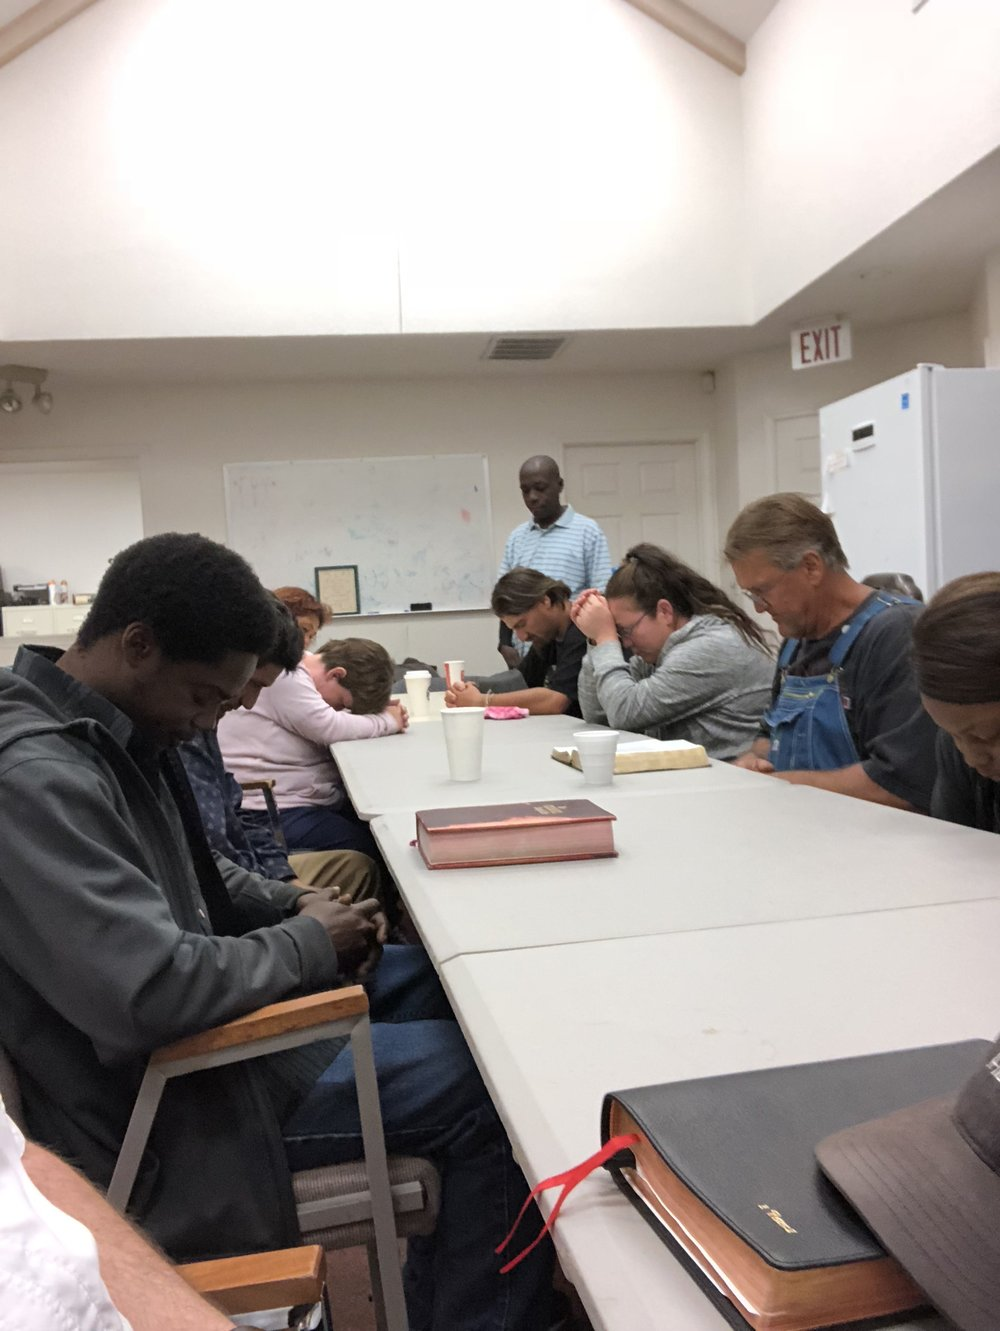 Bible Study with our homeless friends. Wednesdays at noon @ The Baptist Crisis Center